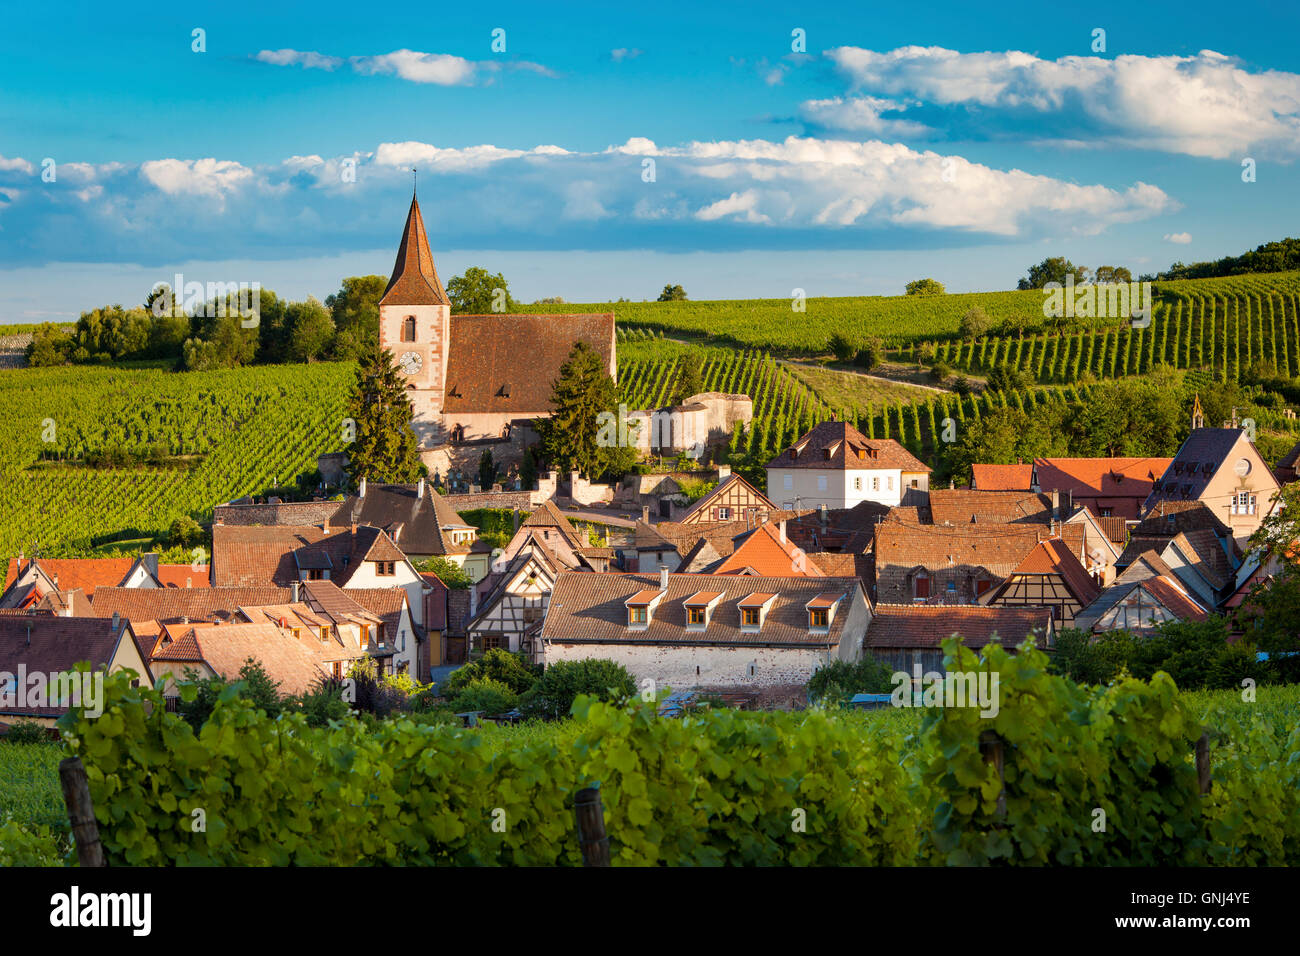 View over town of Hunawihr along the wine route, Alsace, Haut-Rhin, France - Stock Image